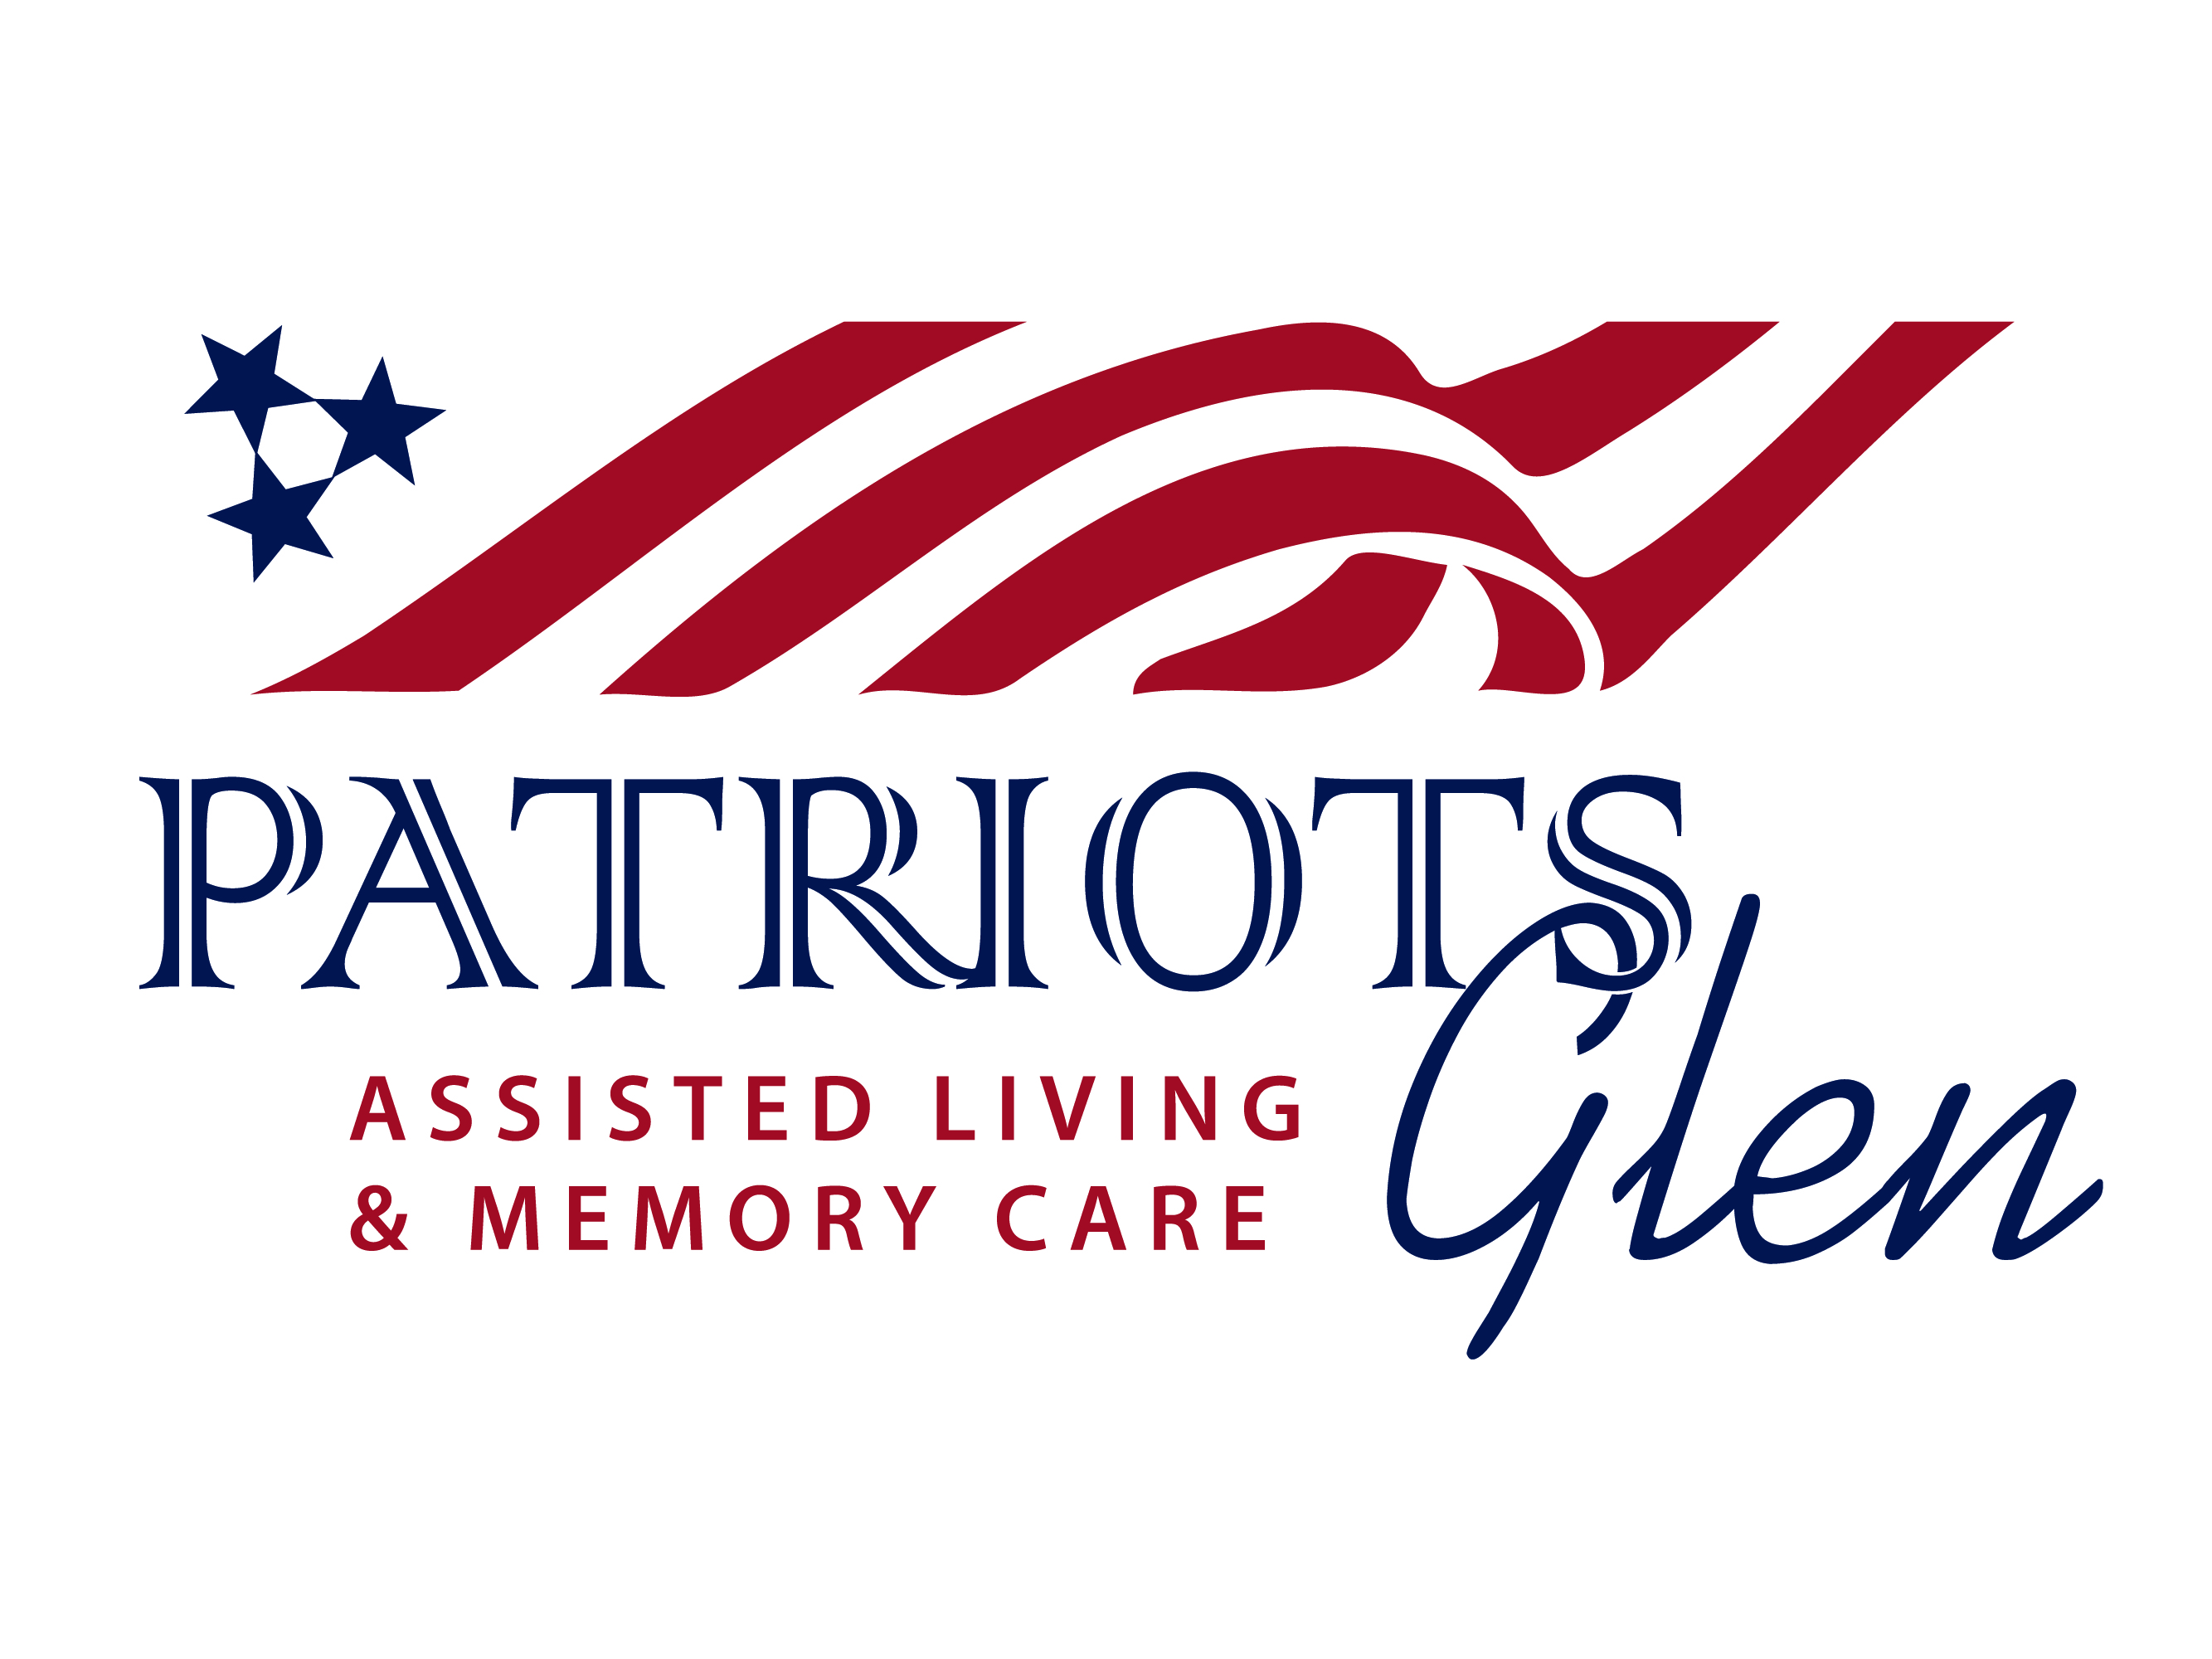 Patriots Glen – A Careage Community